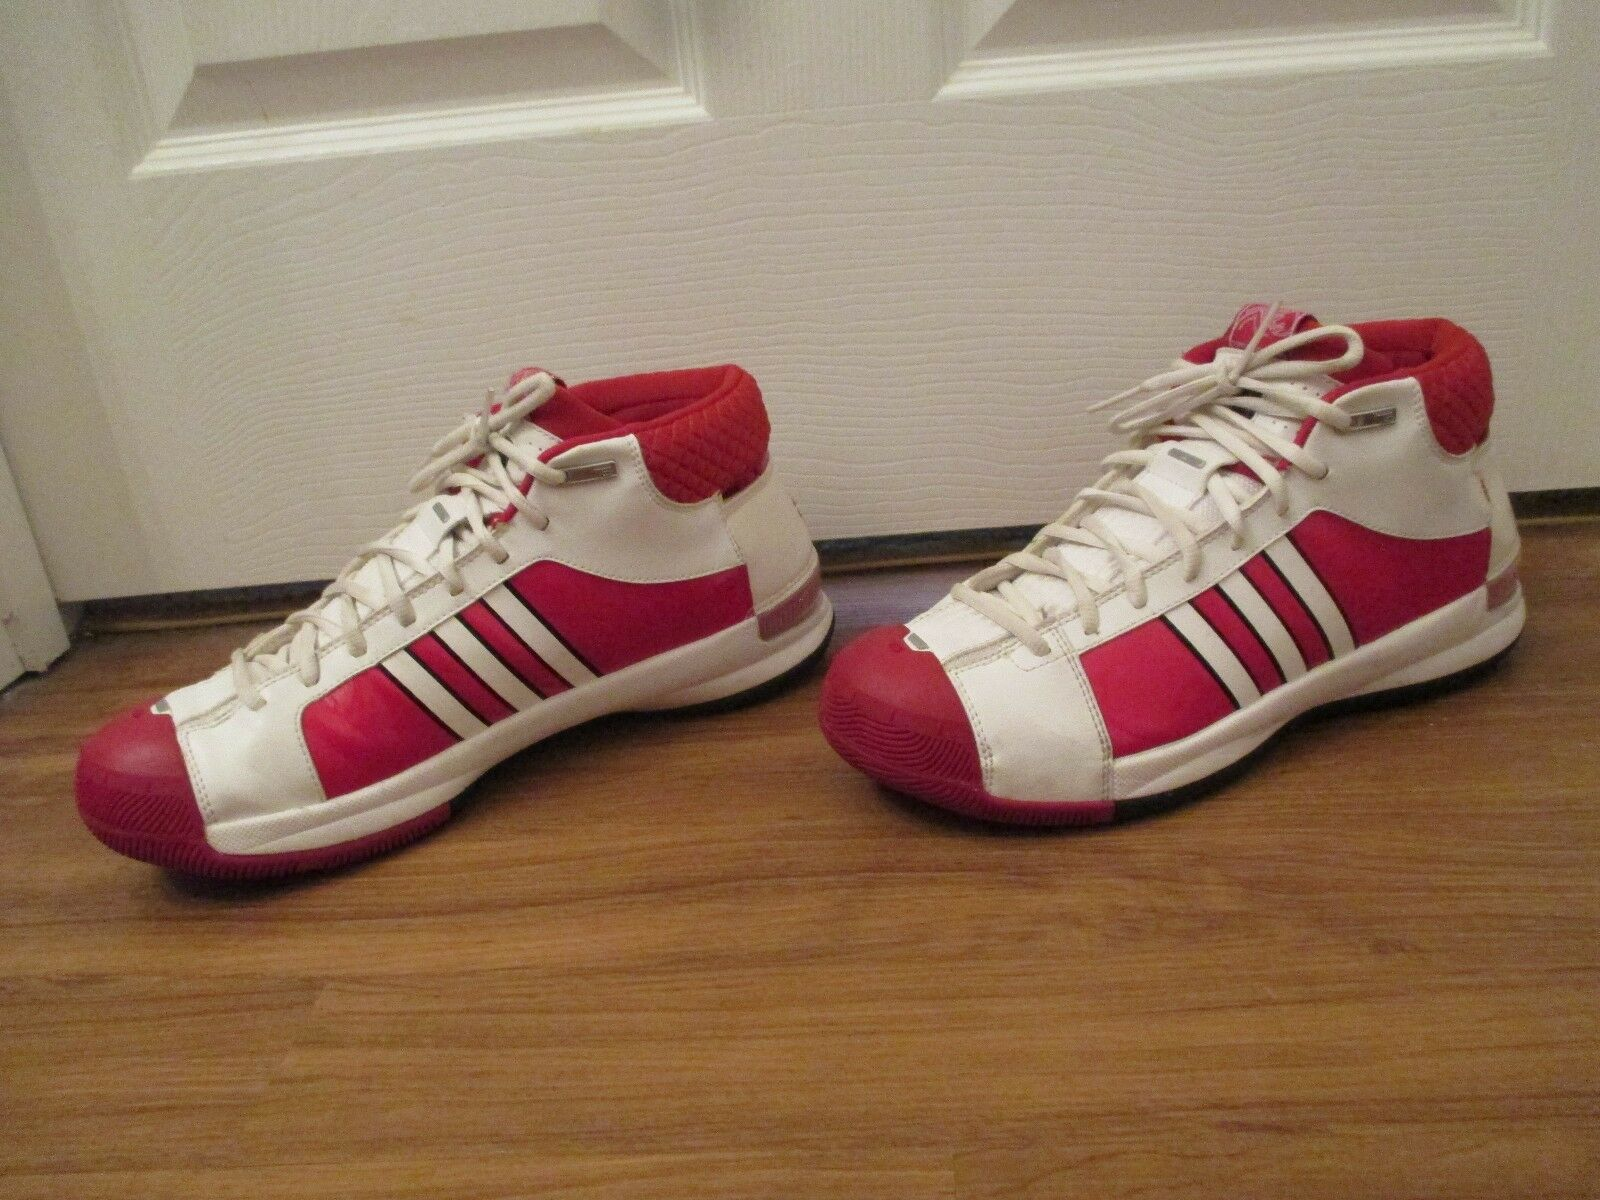 Used Worn Size 11.5 Adidas TS Pro Model Basketball Shoes White Red Black